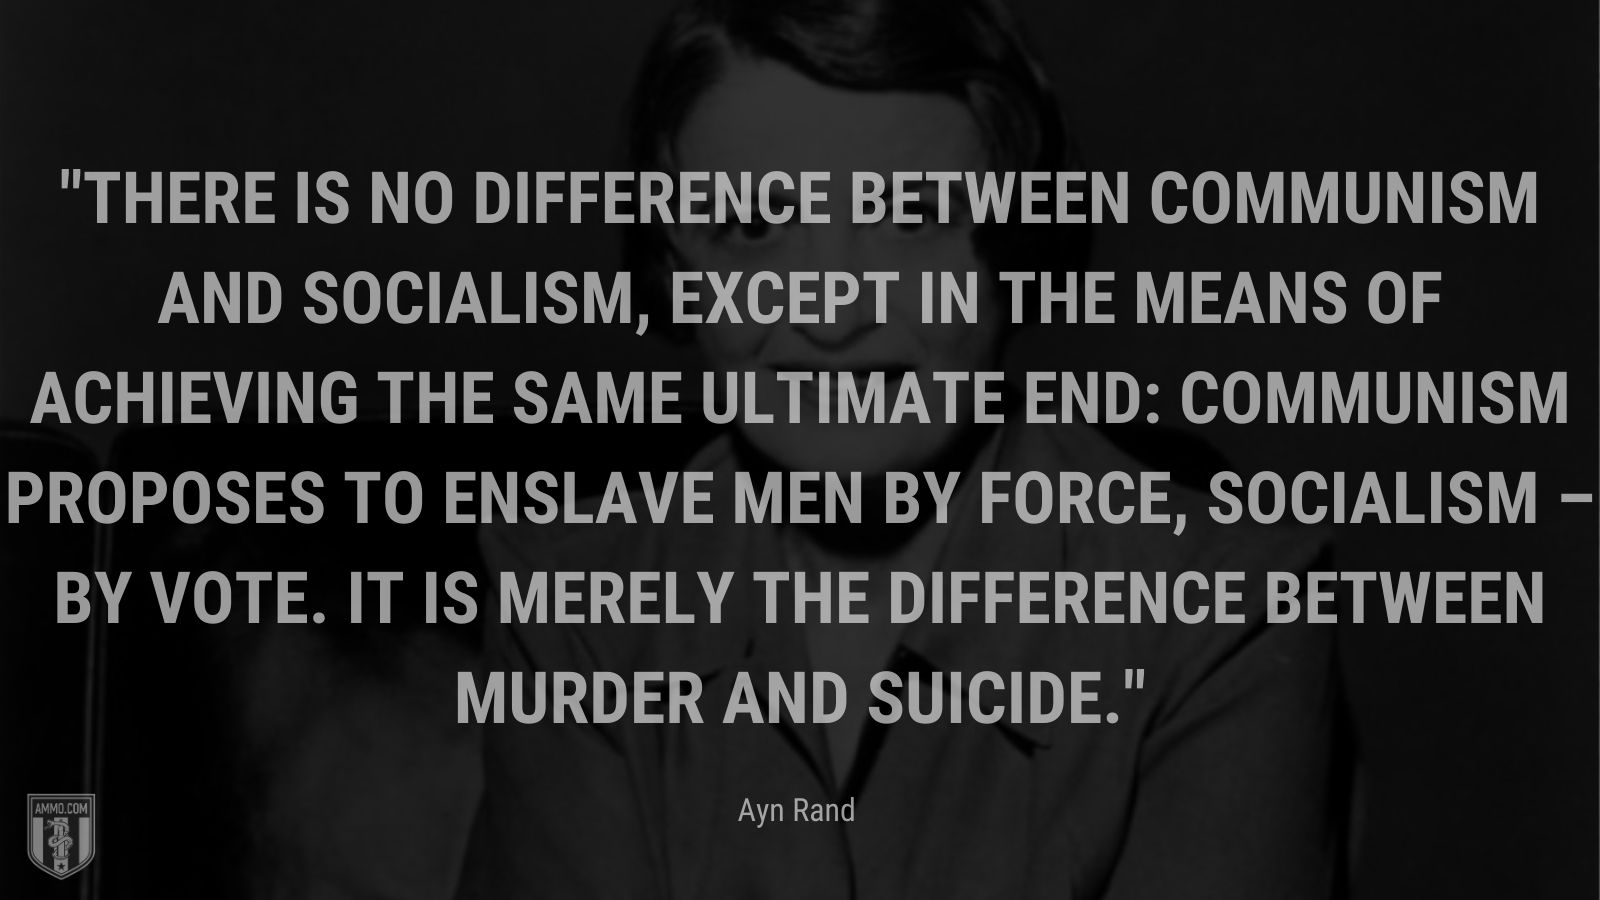 """""""There is no difference between communism and socialism, except in the means of achieving the same ultimate end: communism proposes to enslave men by force, socialism – by vote. It is merely the difference between murder and suicide."""" - Ayn Rand"""